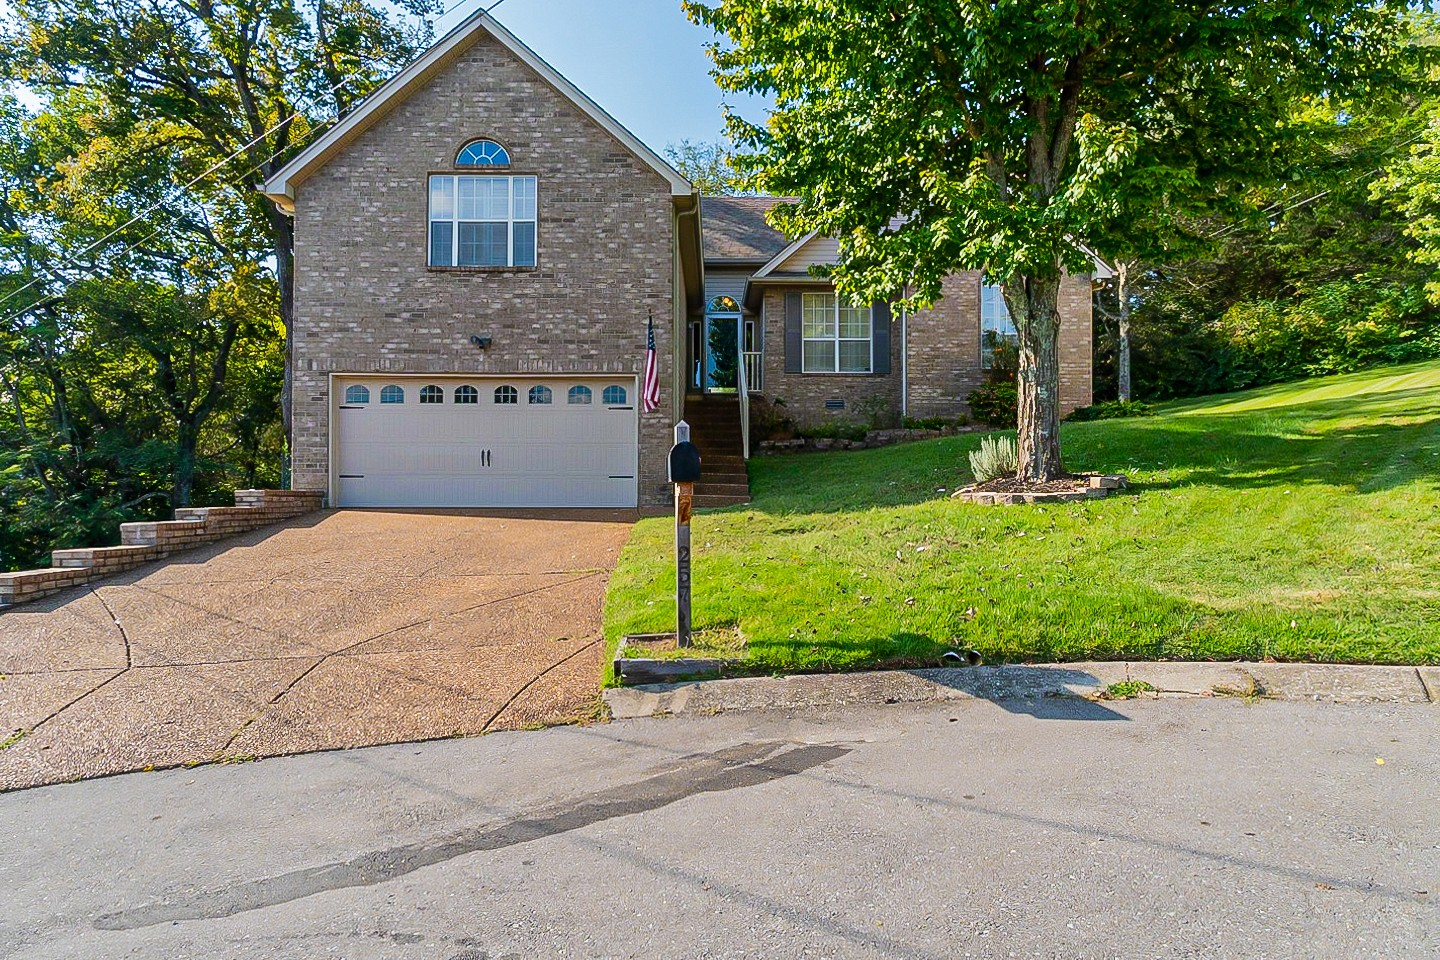 This is such an elegant, beautiful home, nestled in the Bradford Hills community in the rolling neighborhoods of Nolensville. The sprawling back deck overlooks tree covered hills and peaceful woods, and even has a workshop! Featuring large windows, an updated kitchen new carpet throughout, and fresh paint, this home is move in ready!